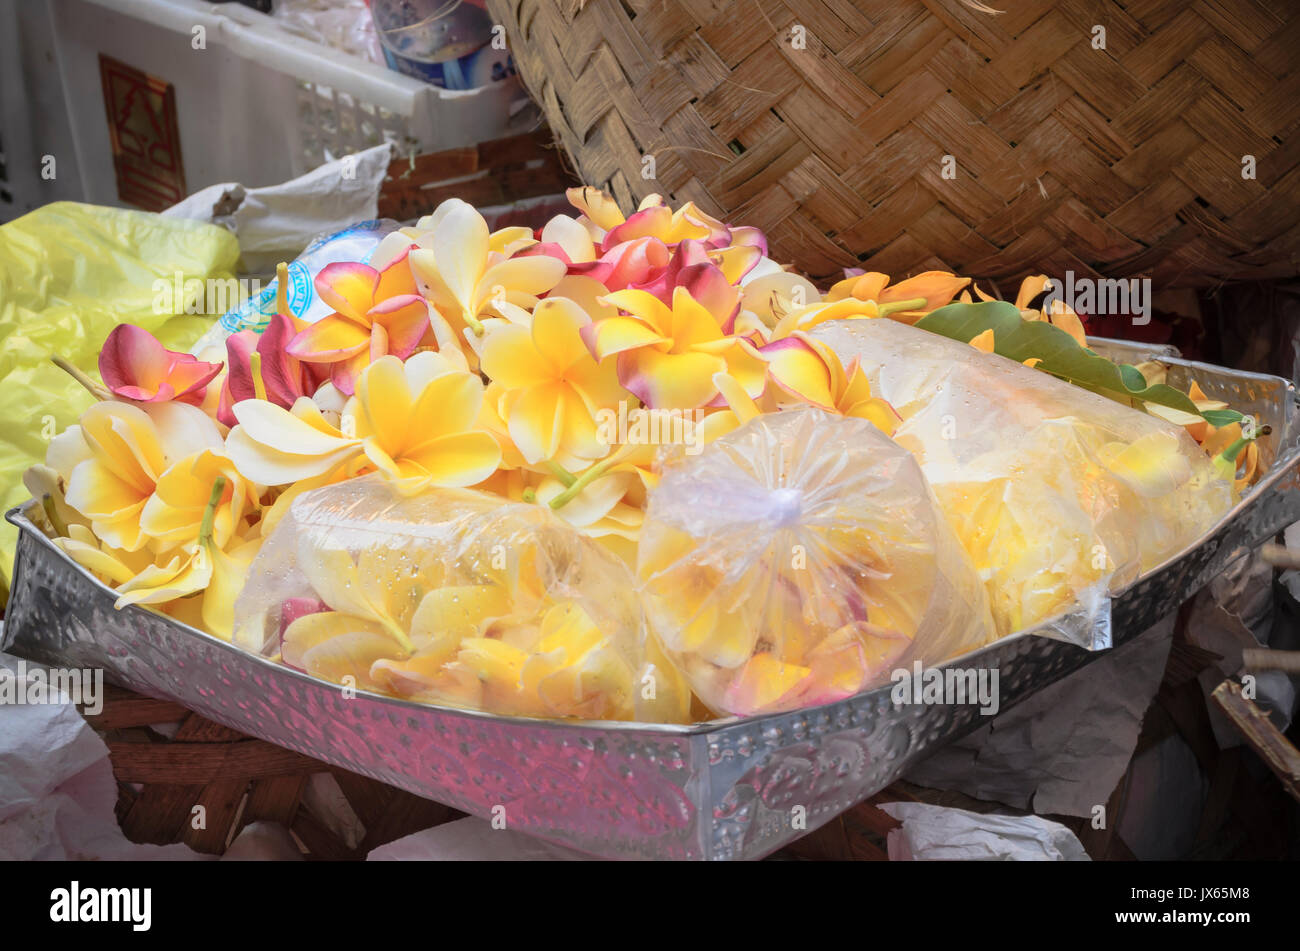 Flowers for Traditional Balinese offering, Frangipani or Plumeria, for sale at the Ubud Traditional Market, Ubud, Bali. - Stock Image